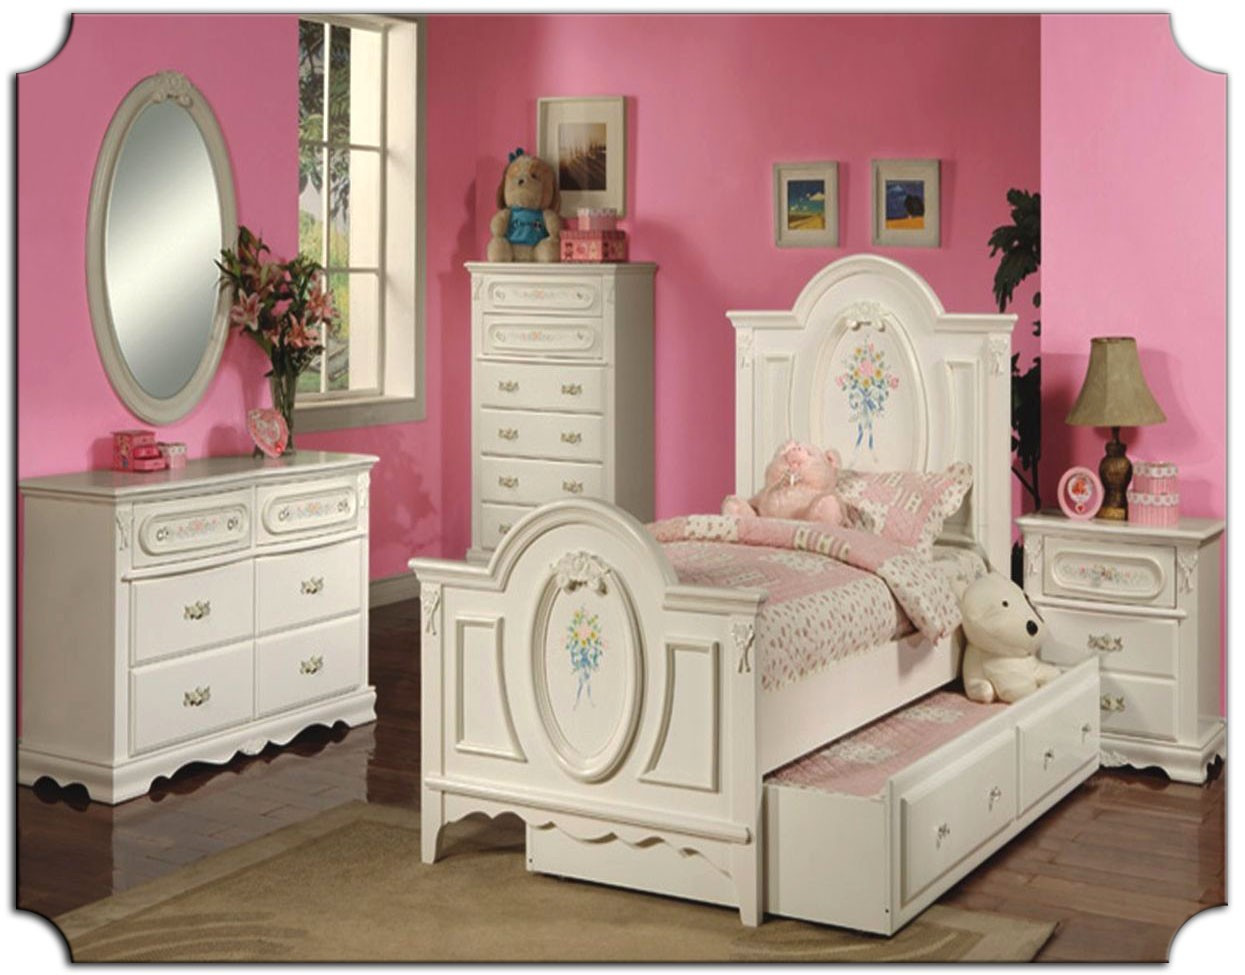 Best ideas about Kids Bedroom Furniture Sets . Save or Pin Kids Bedroom Furniture Girls Now.